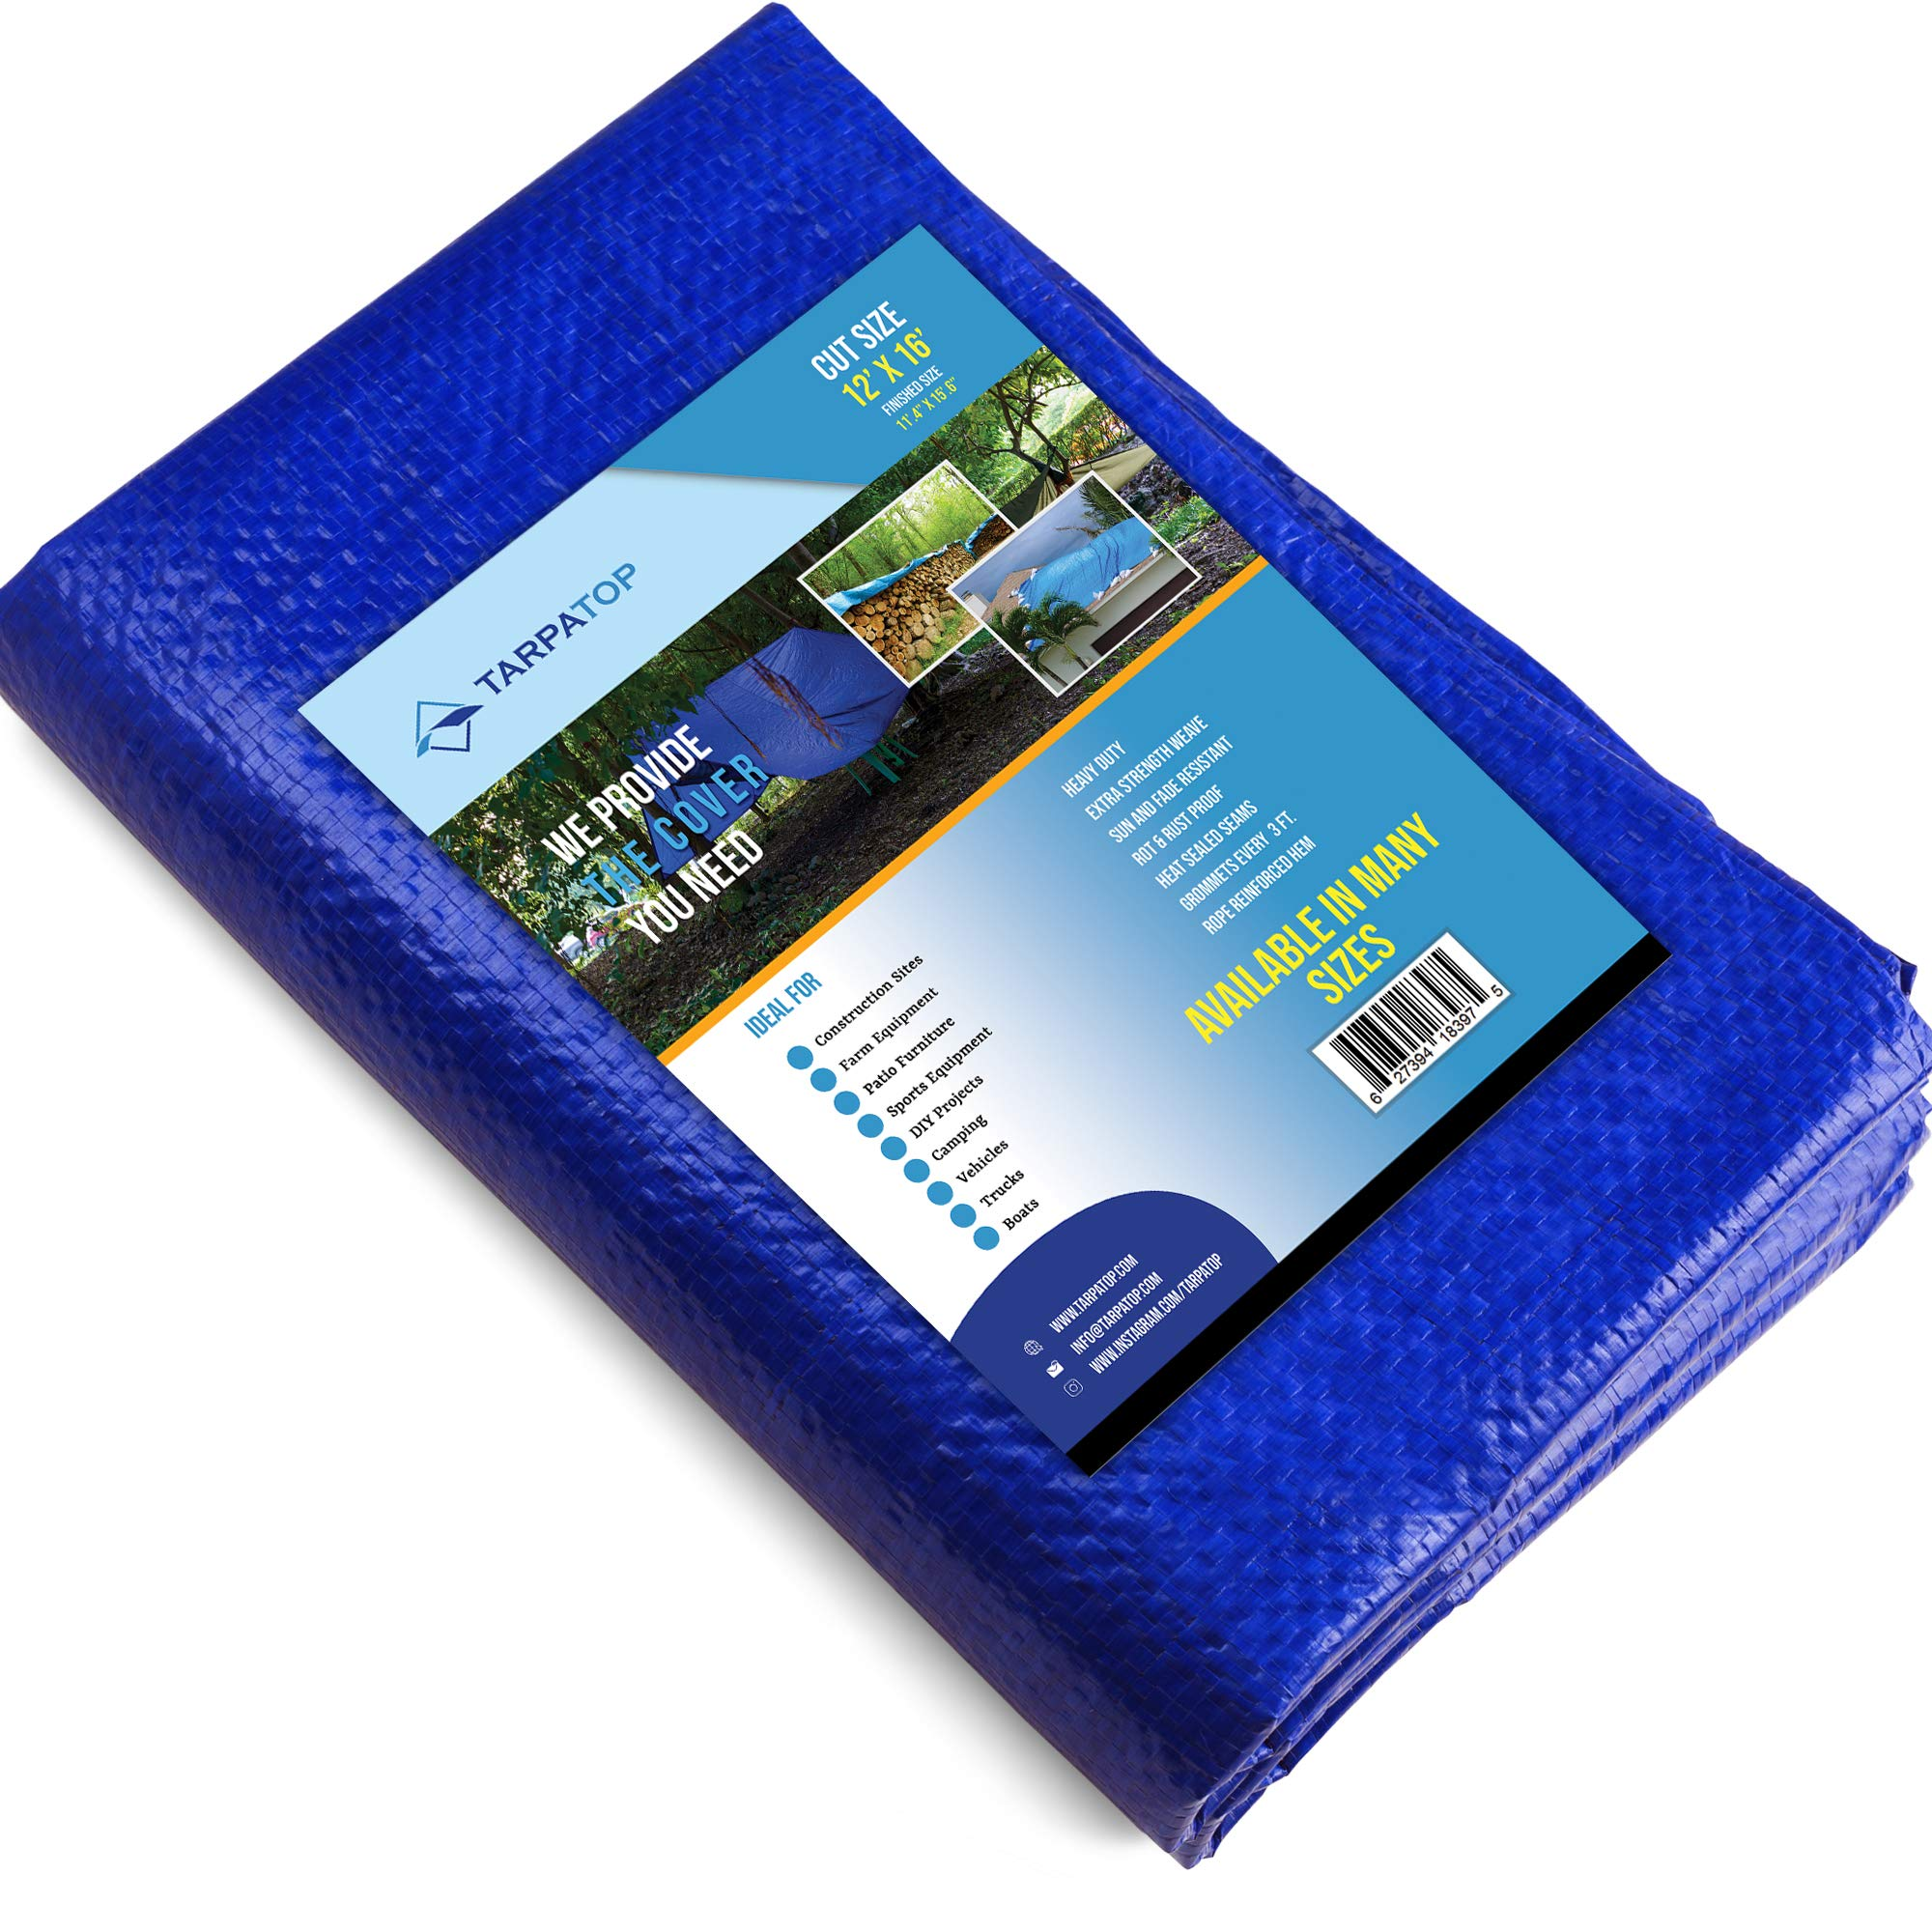 12x16Waterproof Multi-Purpose Poly Tarp - Blue Tarpaulin Protector For Cars, Boats, Construction Contractors, Campers, And Emergency Shelter. Rot, Rust And UV Resistant Protection Sheet by TARPATOP